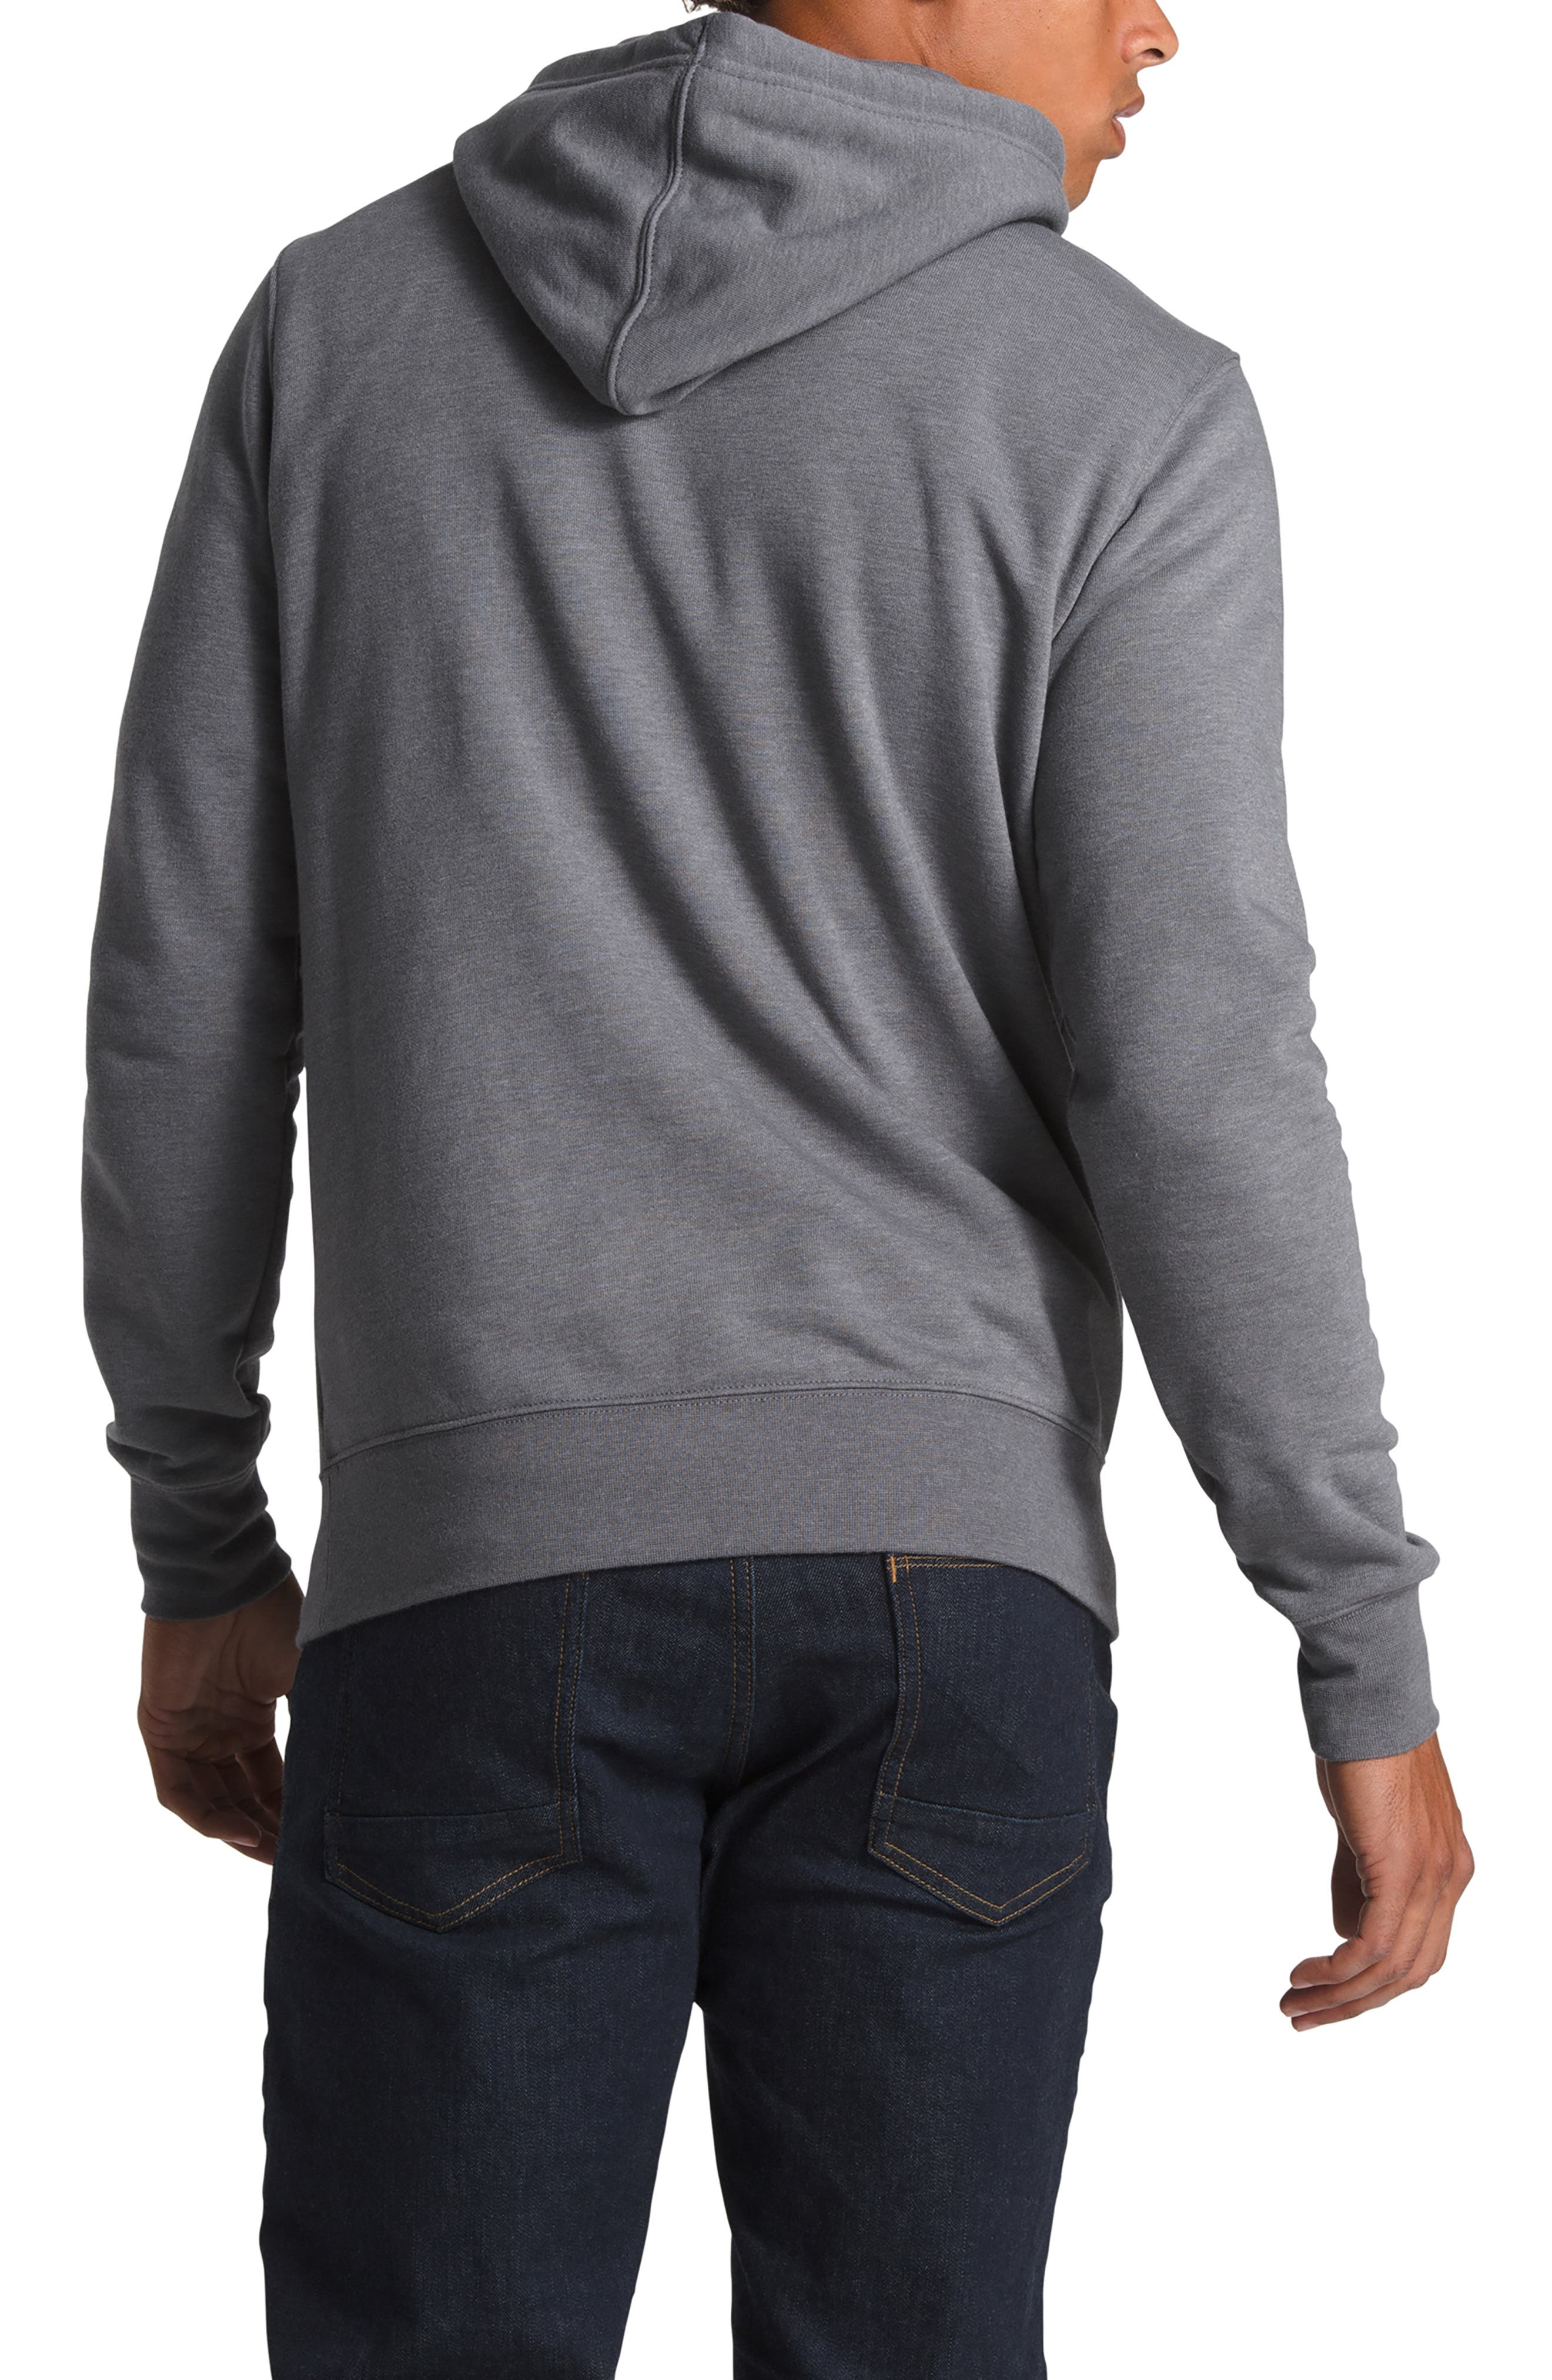 THE NORTH FACE, Gradient Sunset Pullover Hoodie, Alternate thumbnail 2, color, TNF MEDIUM GREY HEATHER